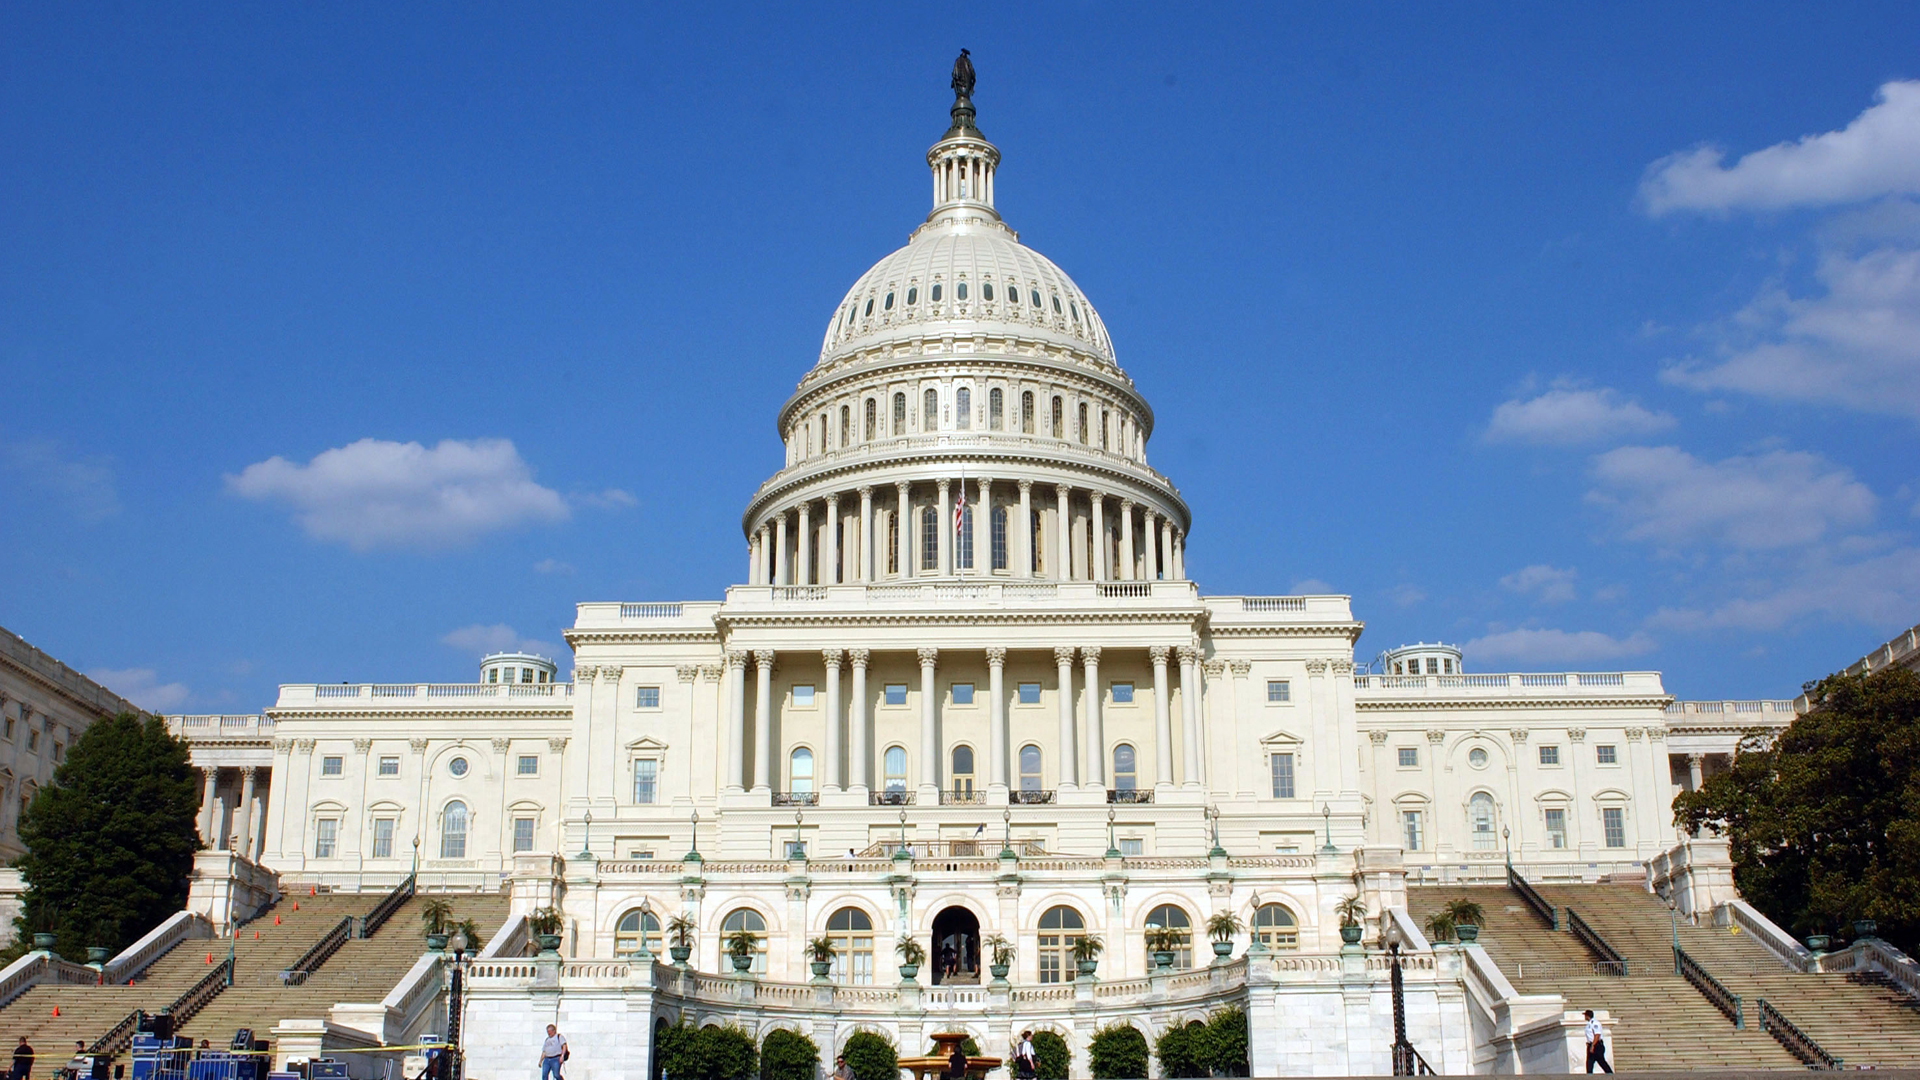 The U.S. Capitol building is seen in this file photo. (Photo by Stefan Zaklin/Getty Images)